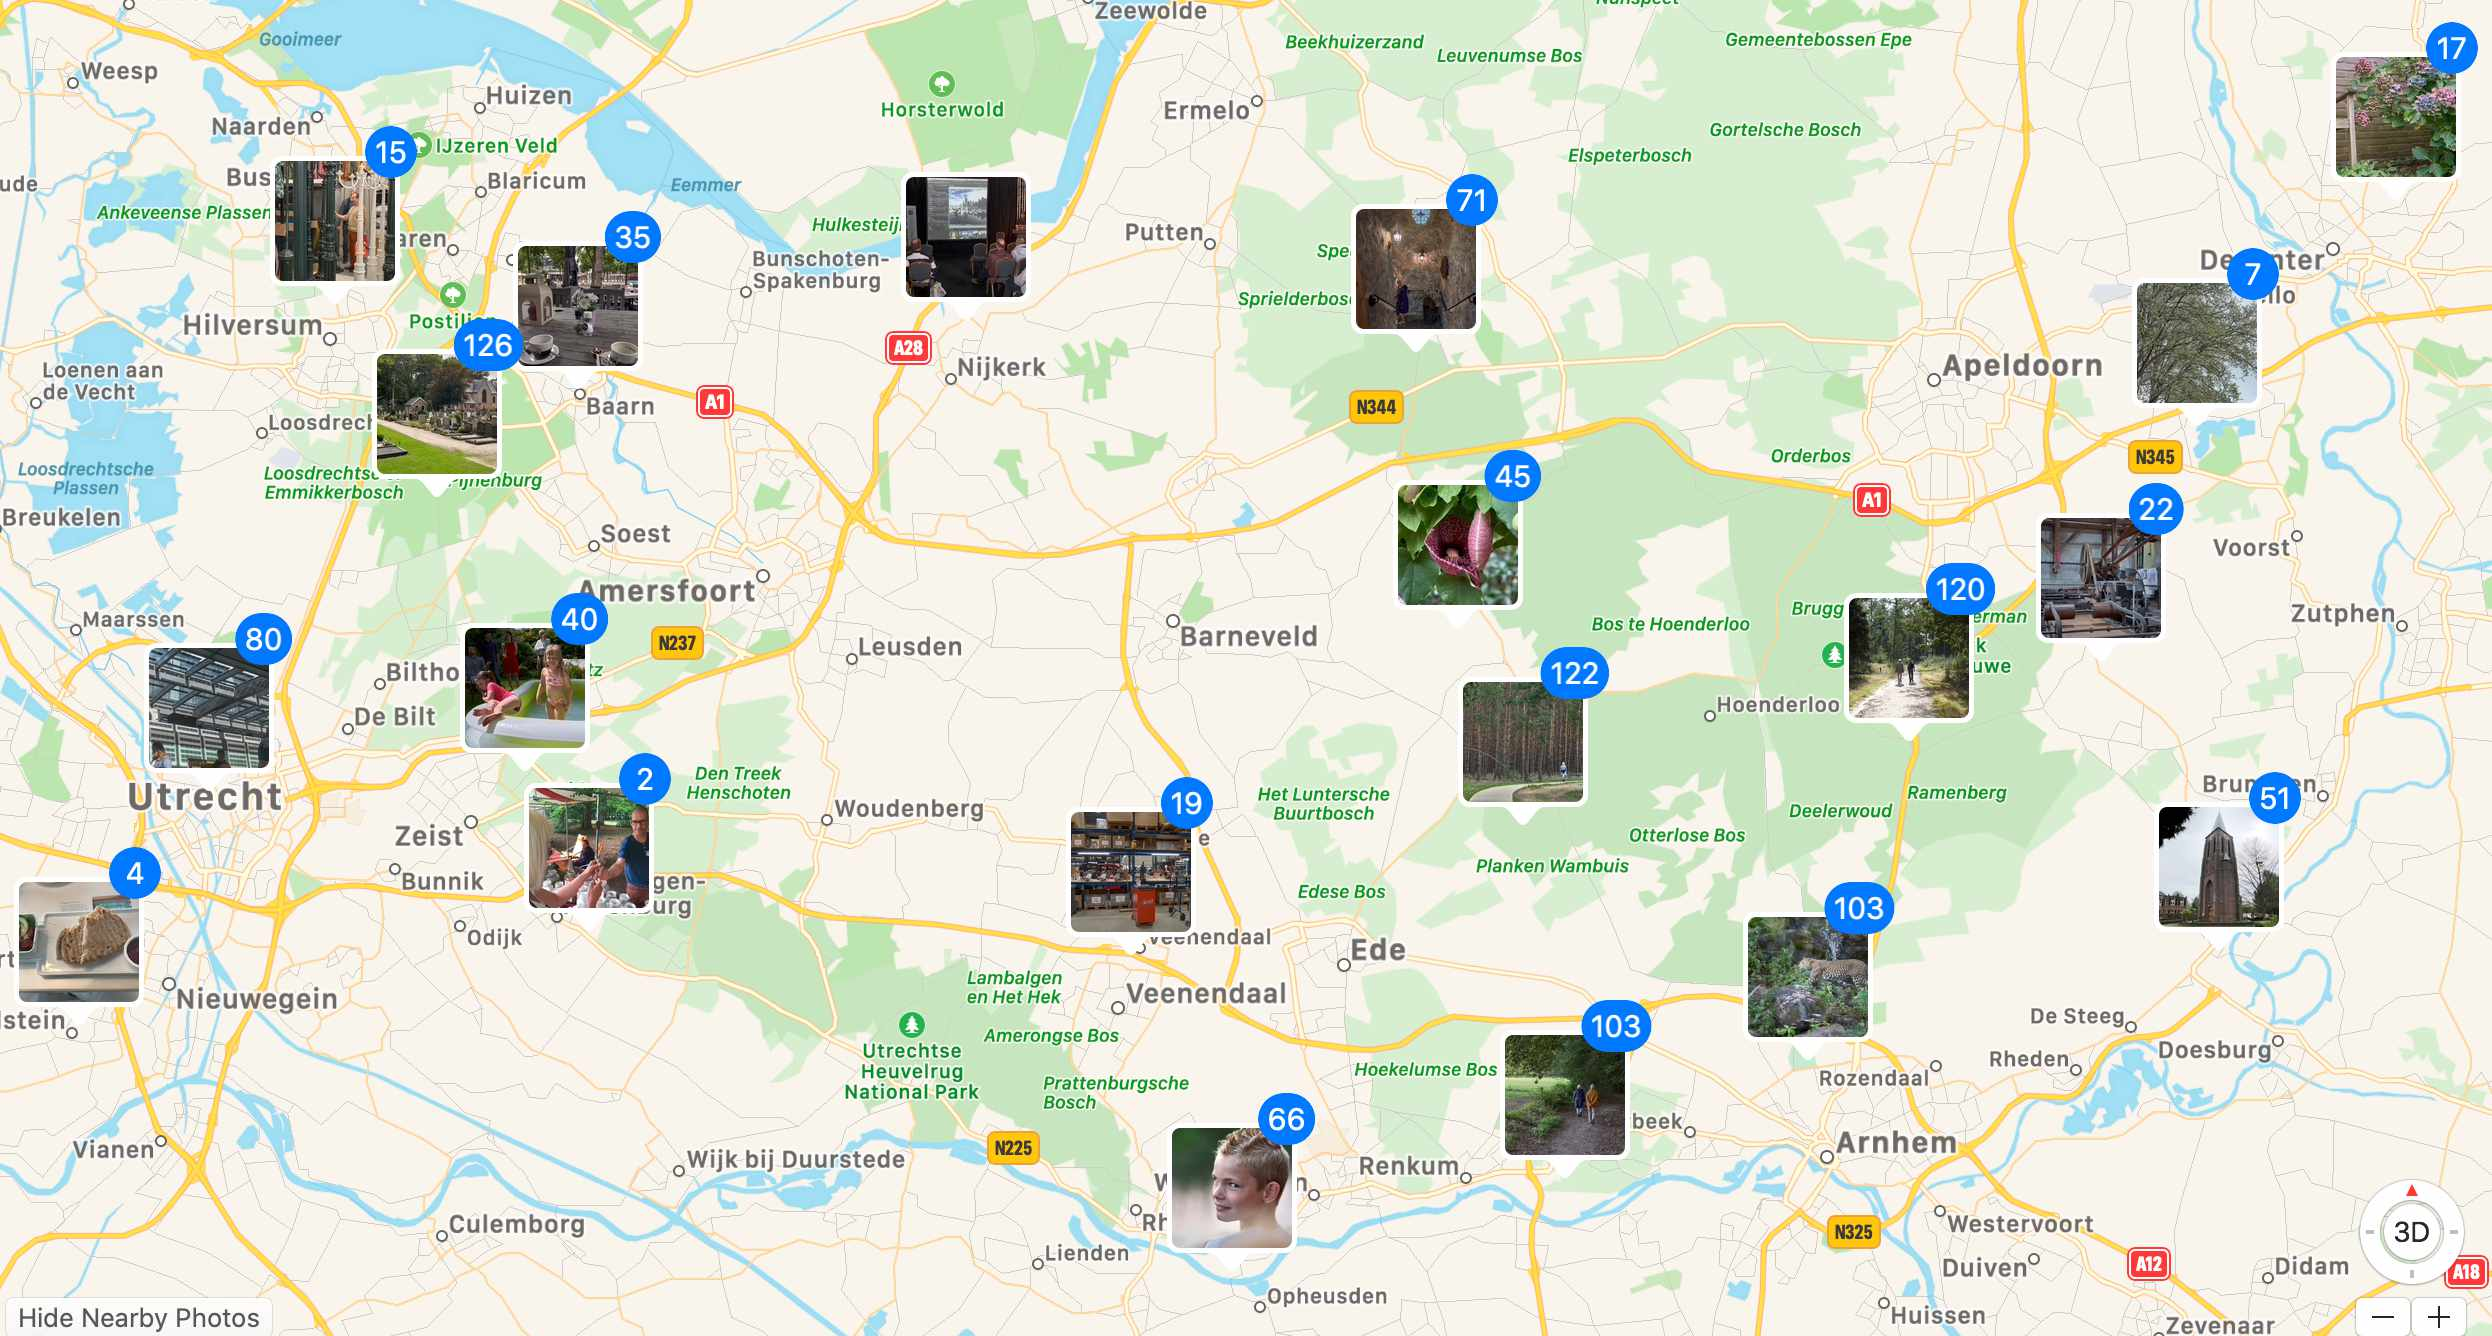 map with image locations thanks to geotagging